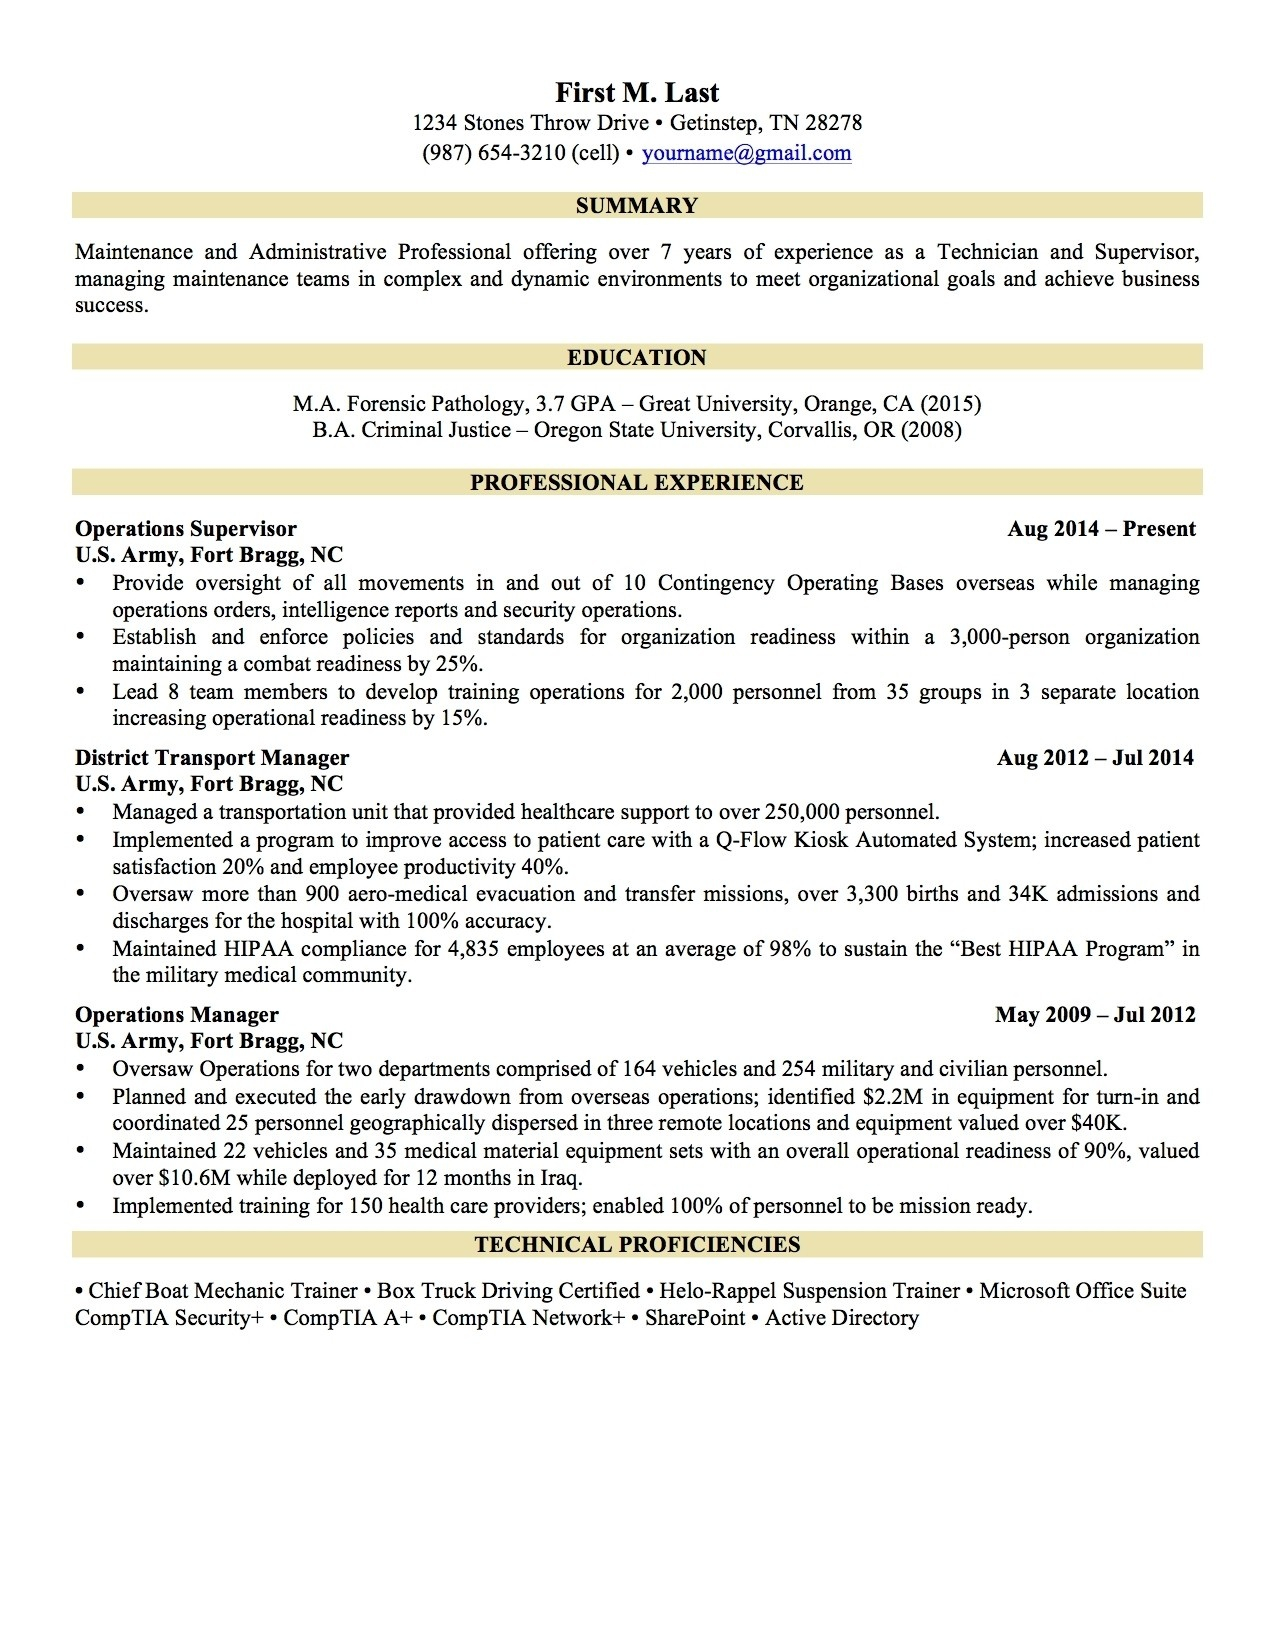 Resume or Resume - Resume Examples Professional Experience Inspirational Fresh Grapher